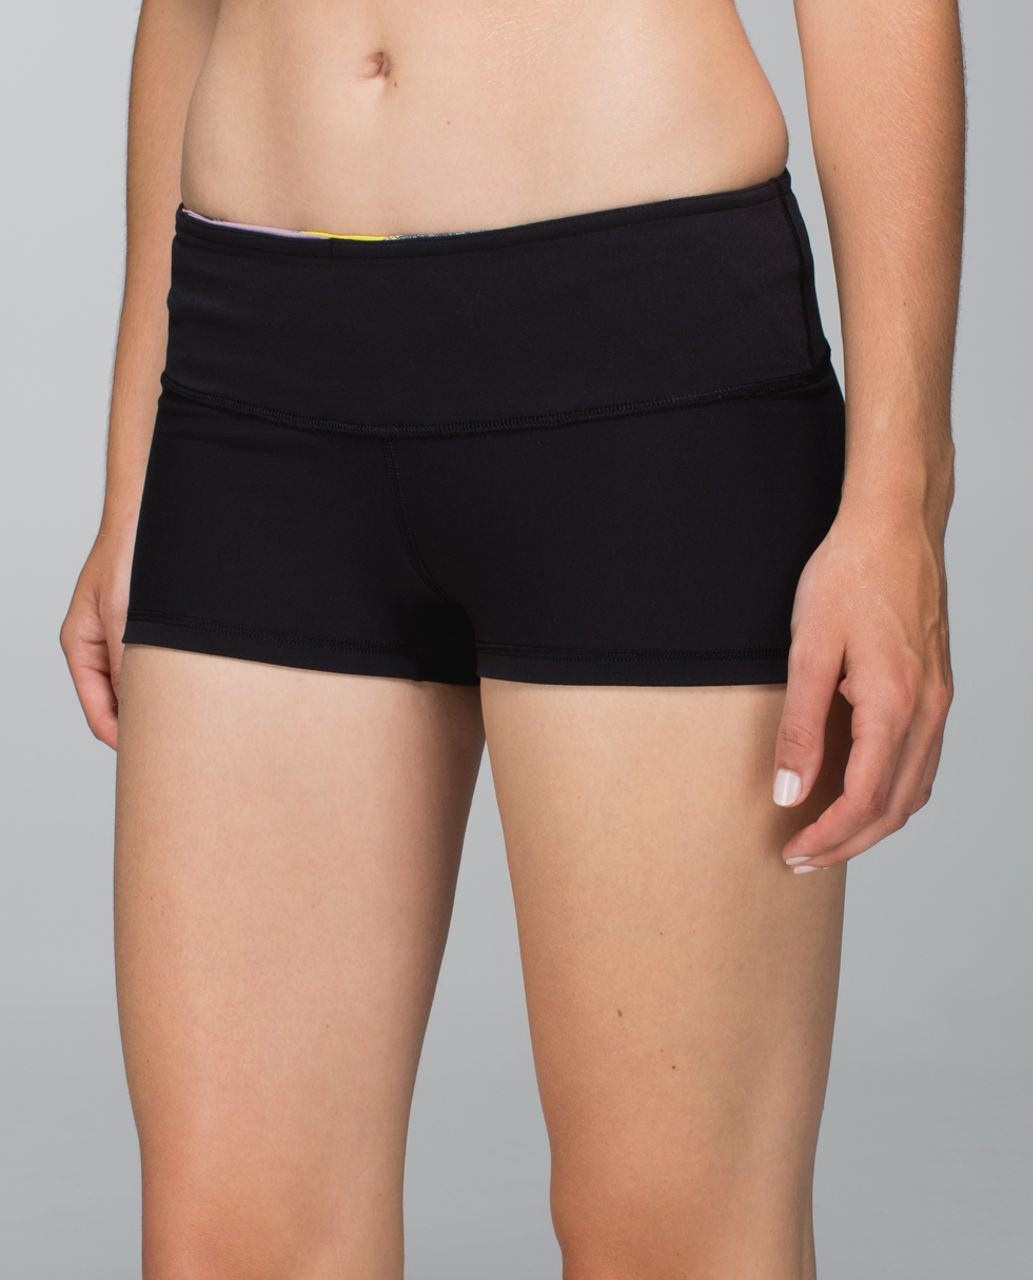 Lululemon Boogie Short *Full-On Luon - Black / Fa14 Quilt 4